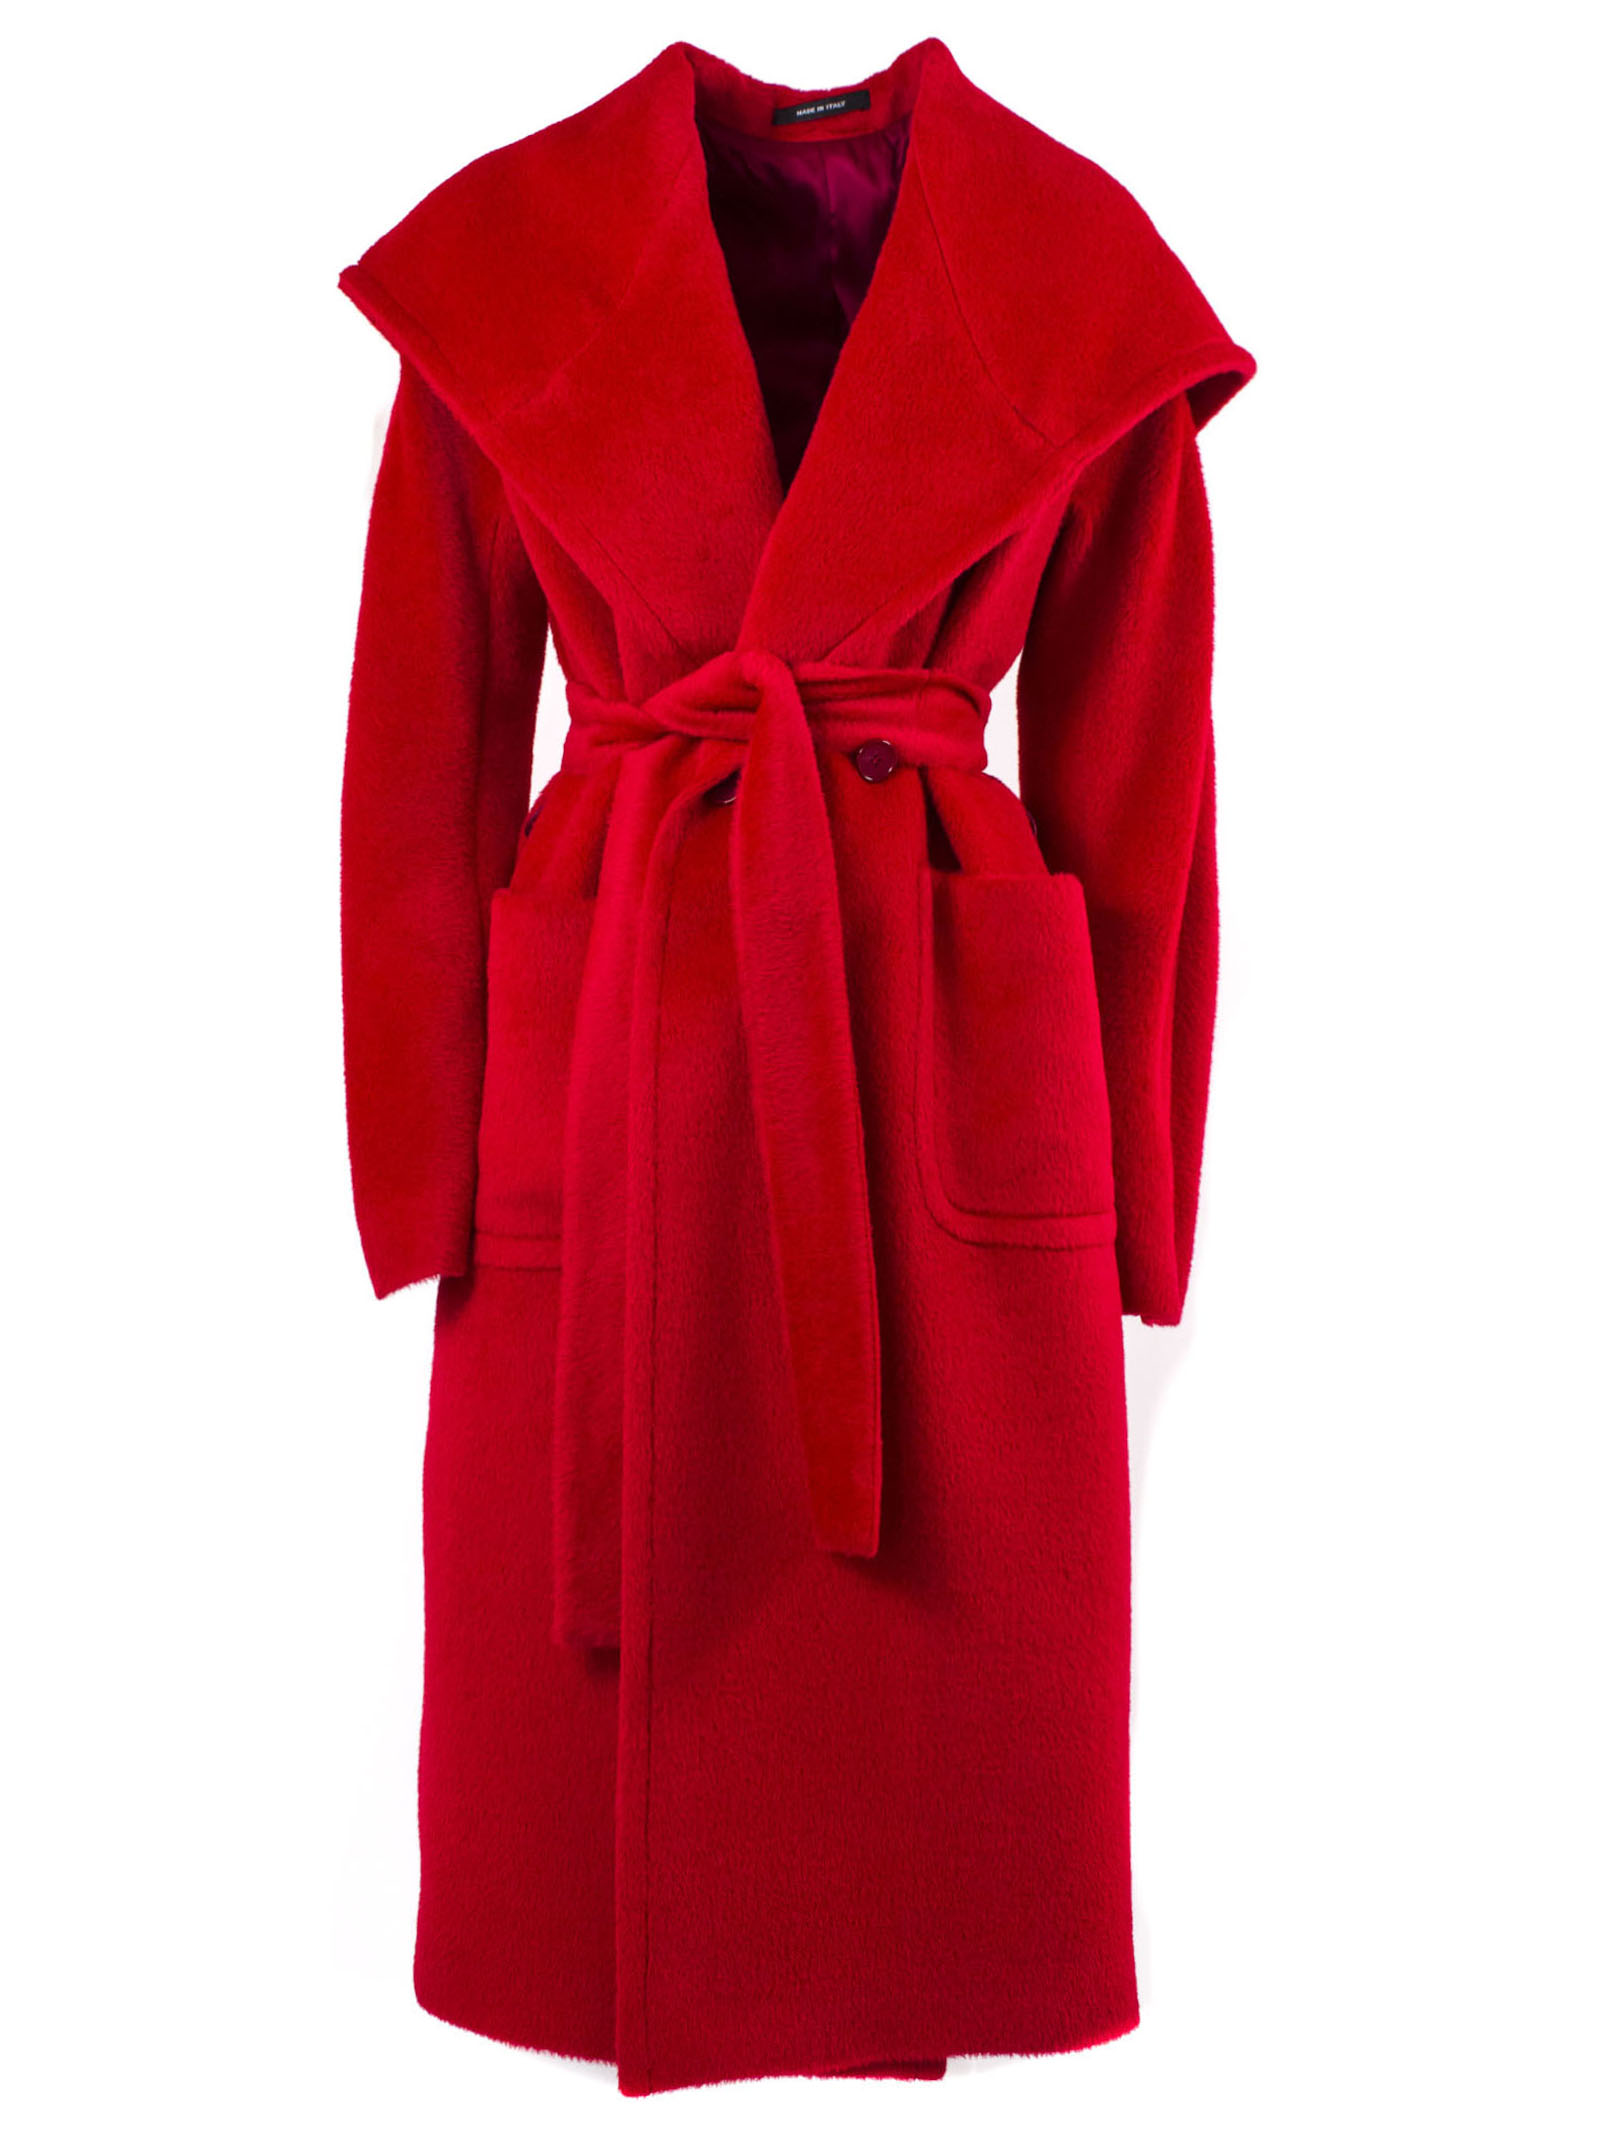 Tagliatore Red Virgin Wool Daisy Coat